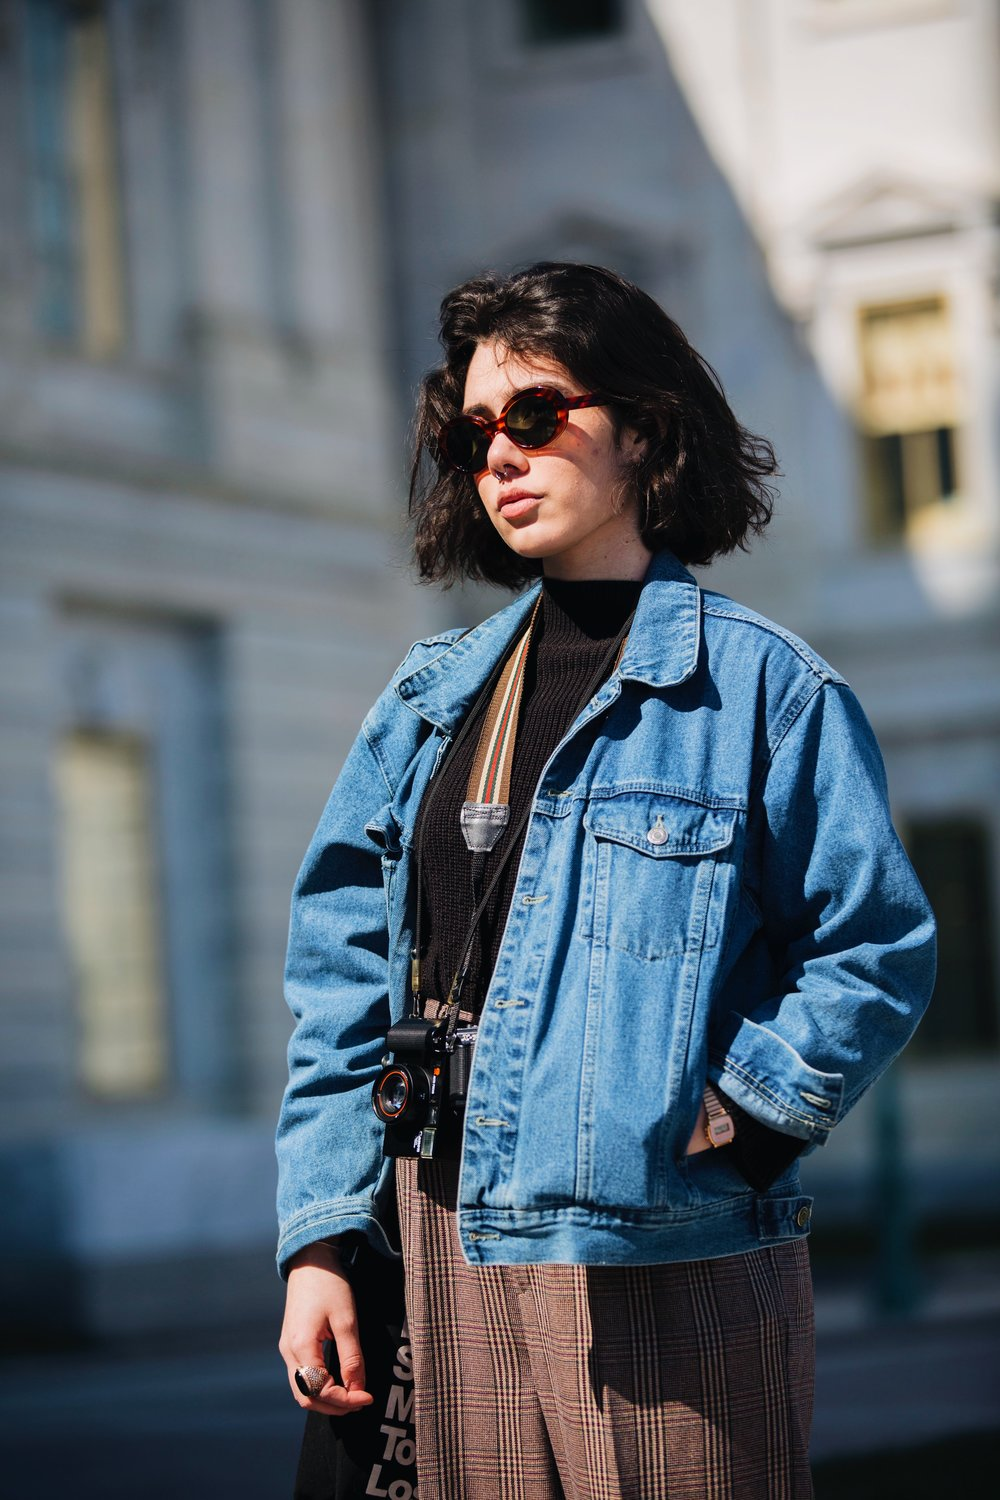 Photograph of photographer Ingridi Viruel wearing blue jeans jacket, glen plaid trouser, sunglasses, black sweater,and a film camera captured by photographer The Creative Gentleman during the Walk with Locals two year anniversary walk.